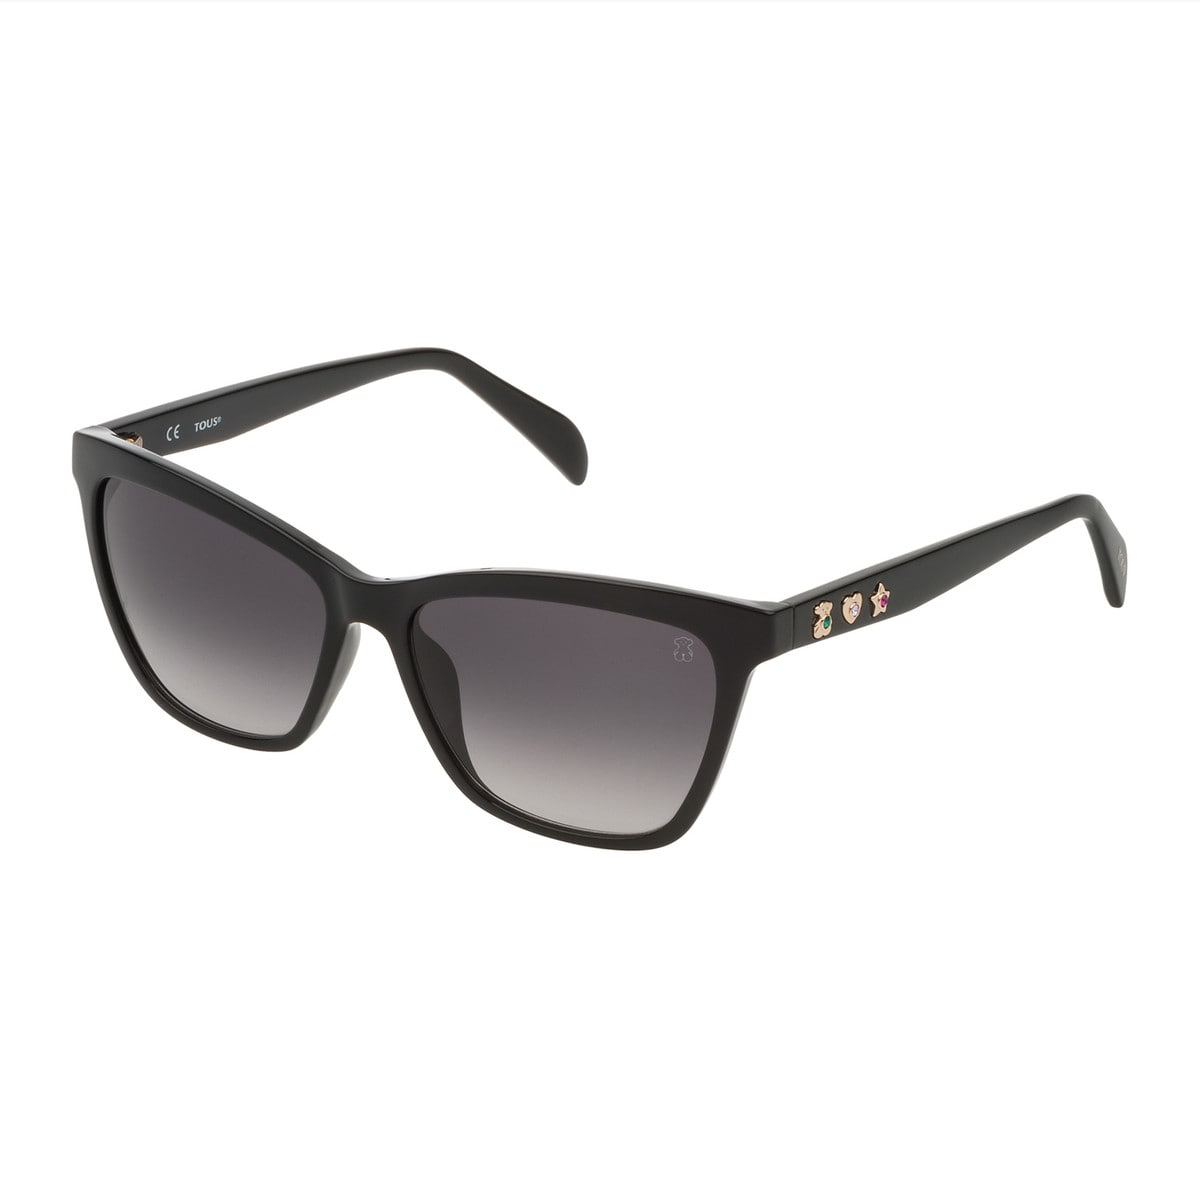 aac595d1ce Lentes de sol Three Motives Squared en color negro - Tous, Joyeros ...